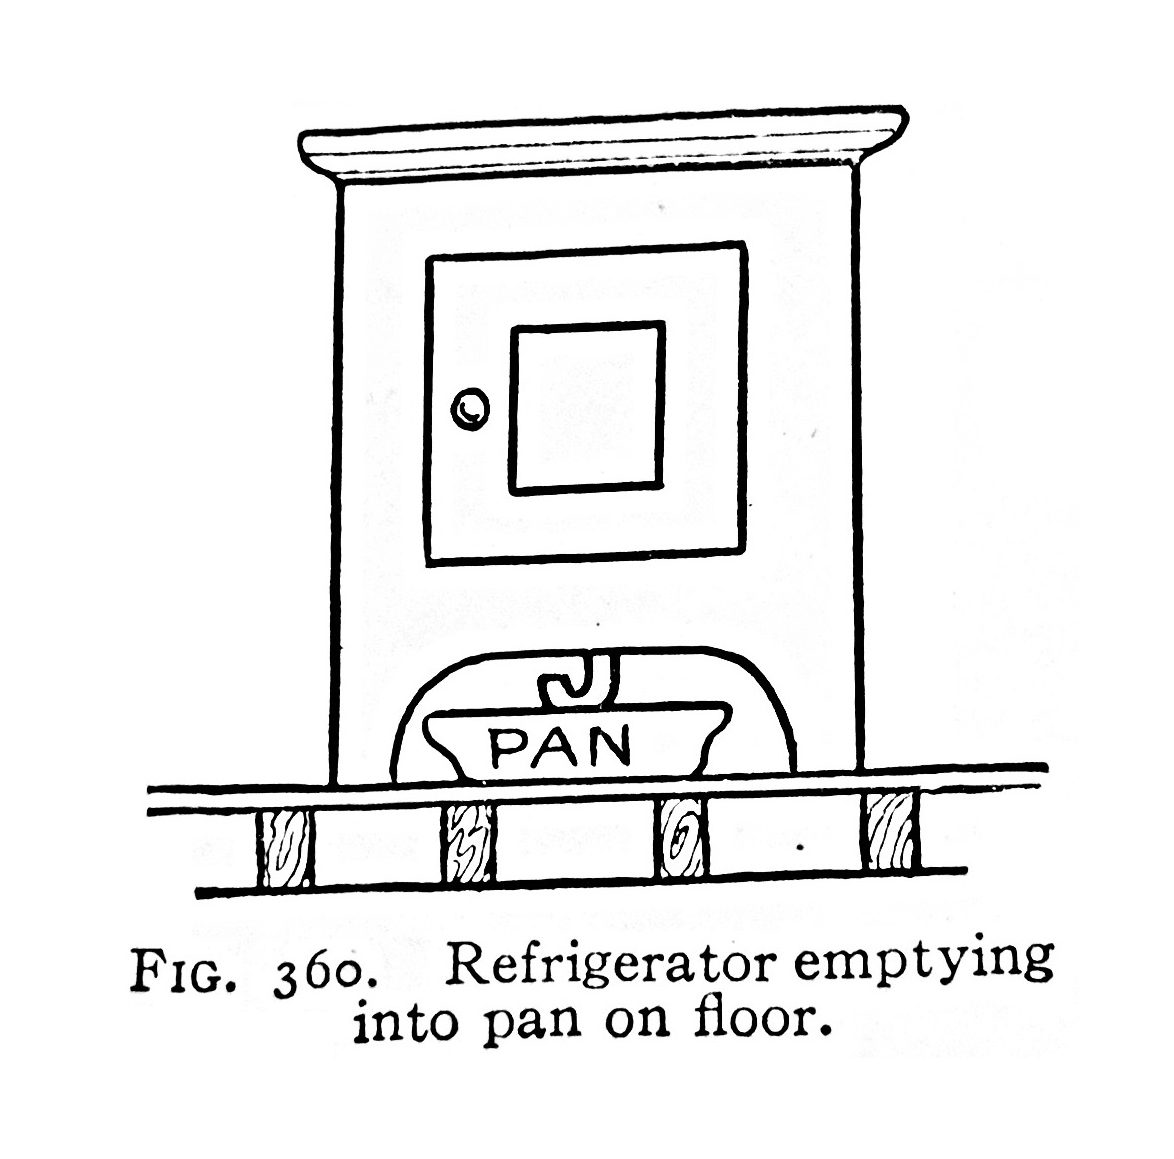 Refrigerator emptying into pan on floor